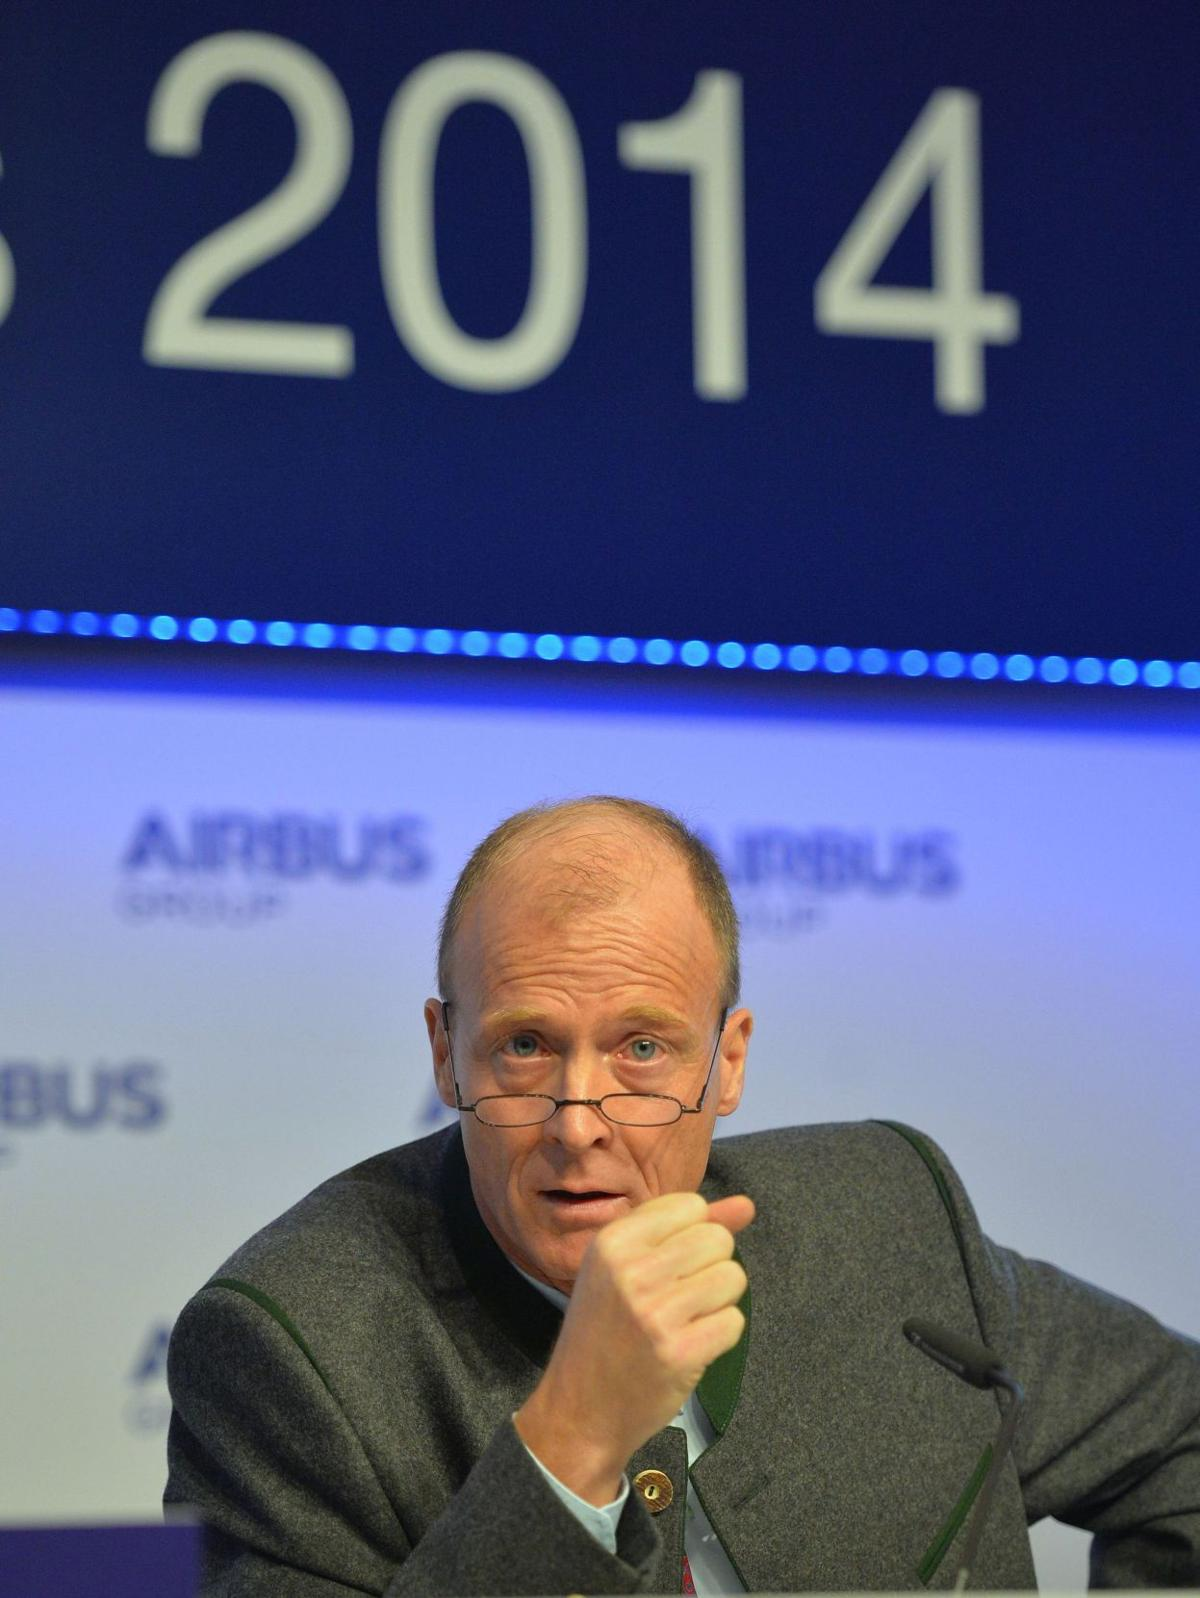 Being rival Airbus says net profit soared in 2014